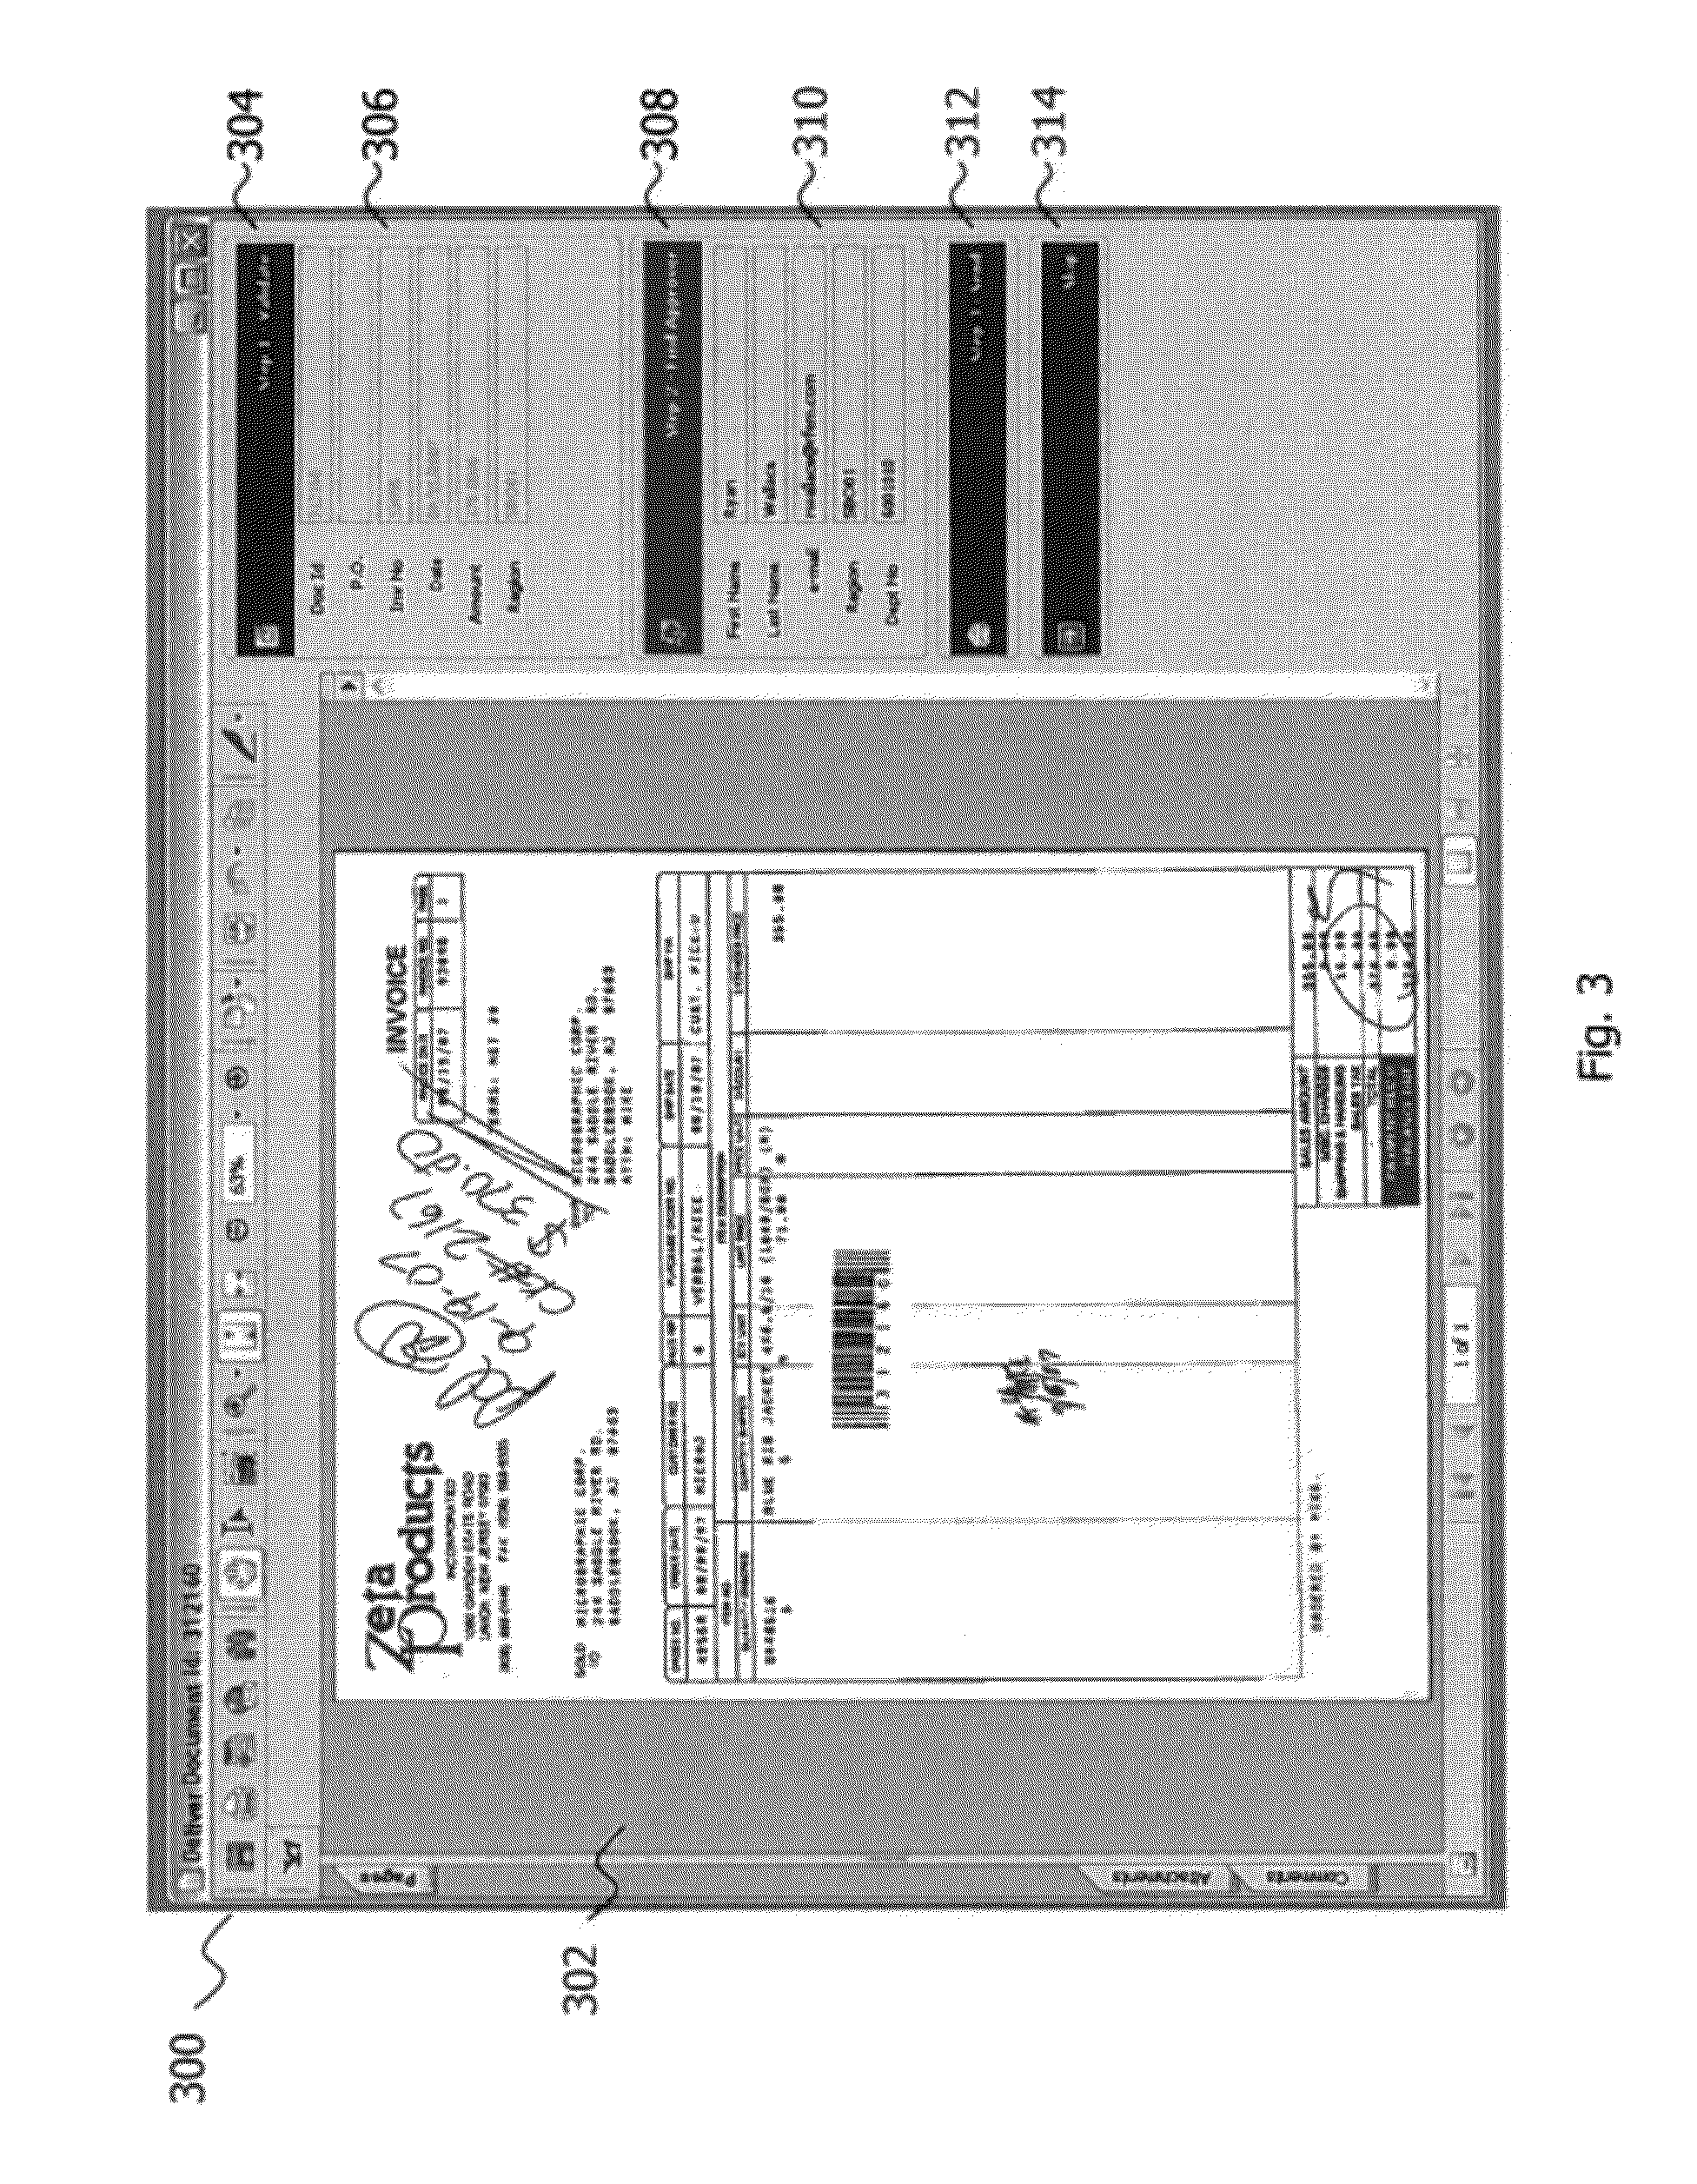 Car Repair Invoice Patent Us  Automated Invoice Processing Software And  Invoice For Web Design Pdf with How To Find Car Invoice Price Excel Patent Drawing To Confirm The Receipt Pdf